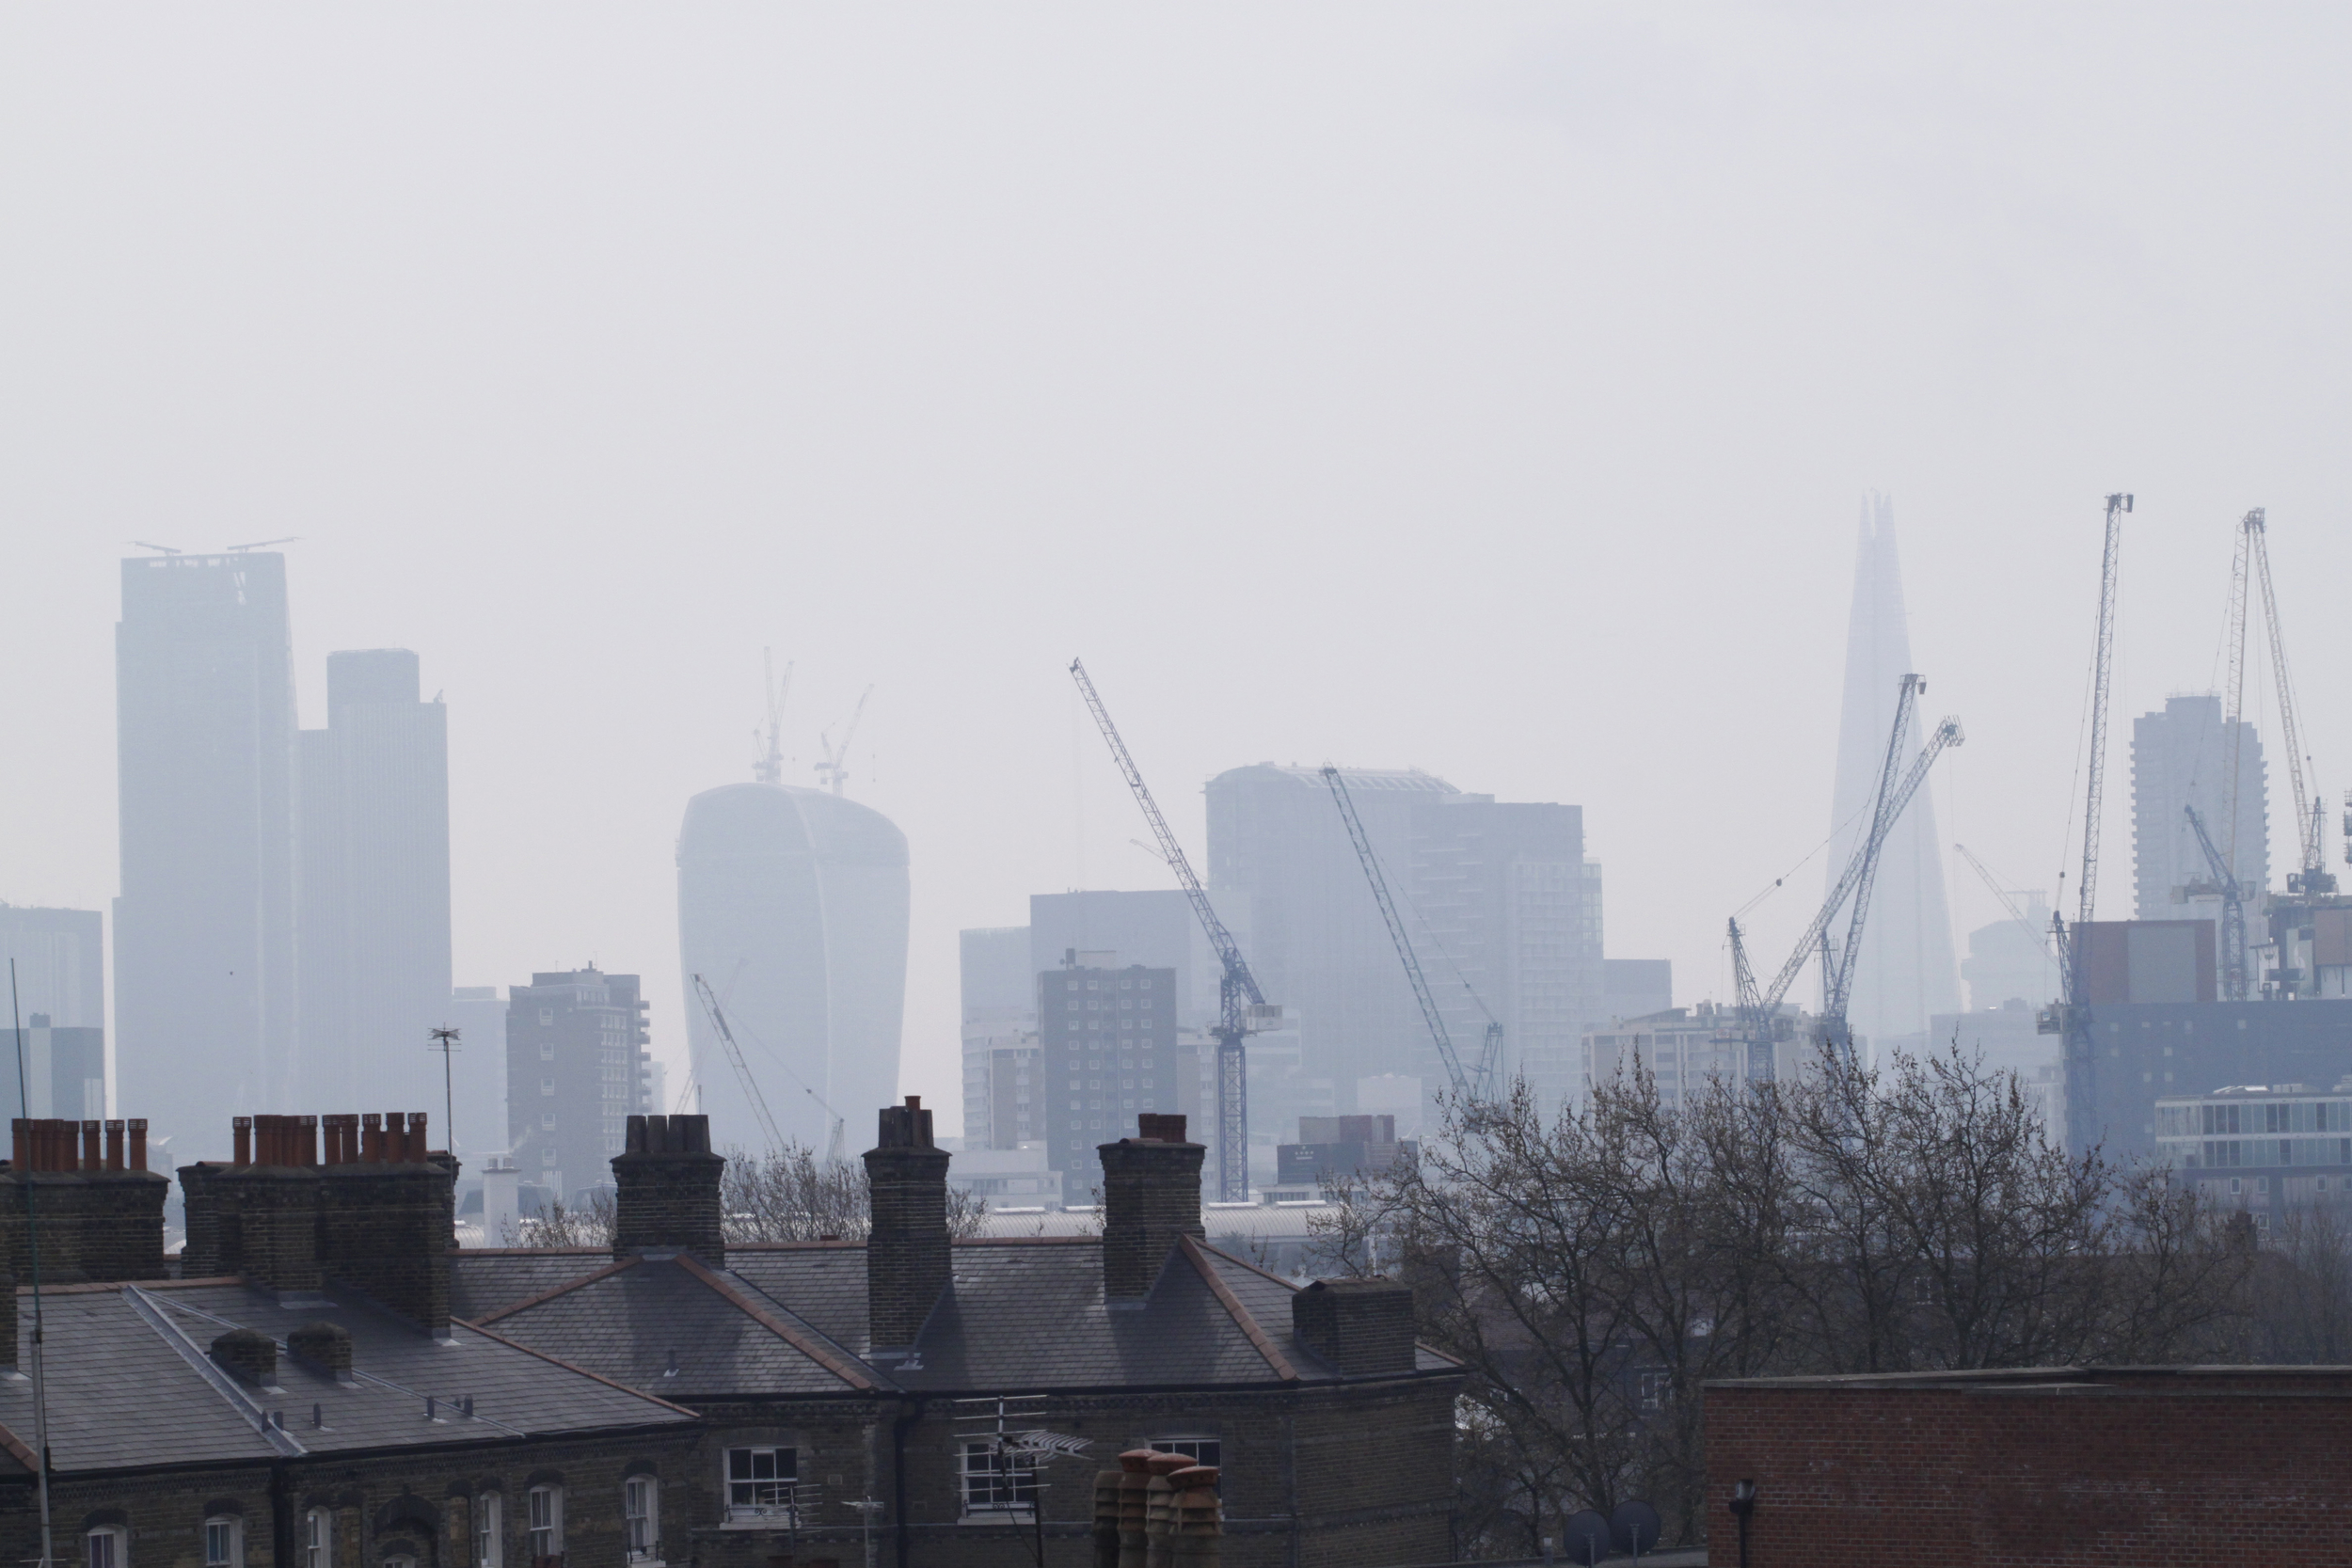 view of London in milky, hazy smog